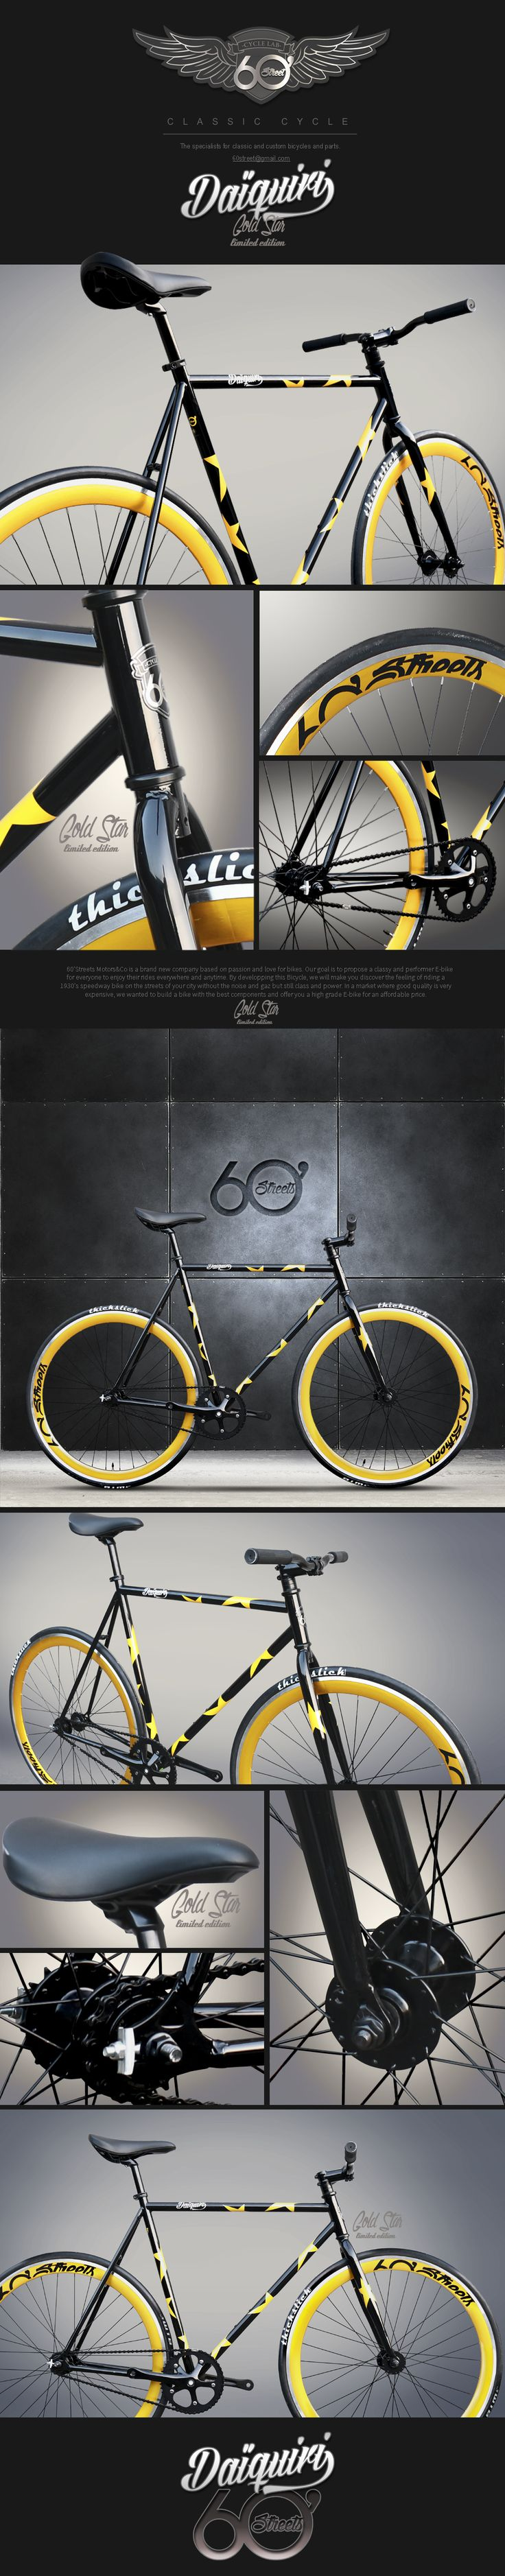 Daiquiri GOLD STAR Limited Edition Fixed Gear Bike Fixie Single Speed Bicycle M